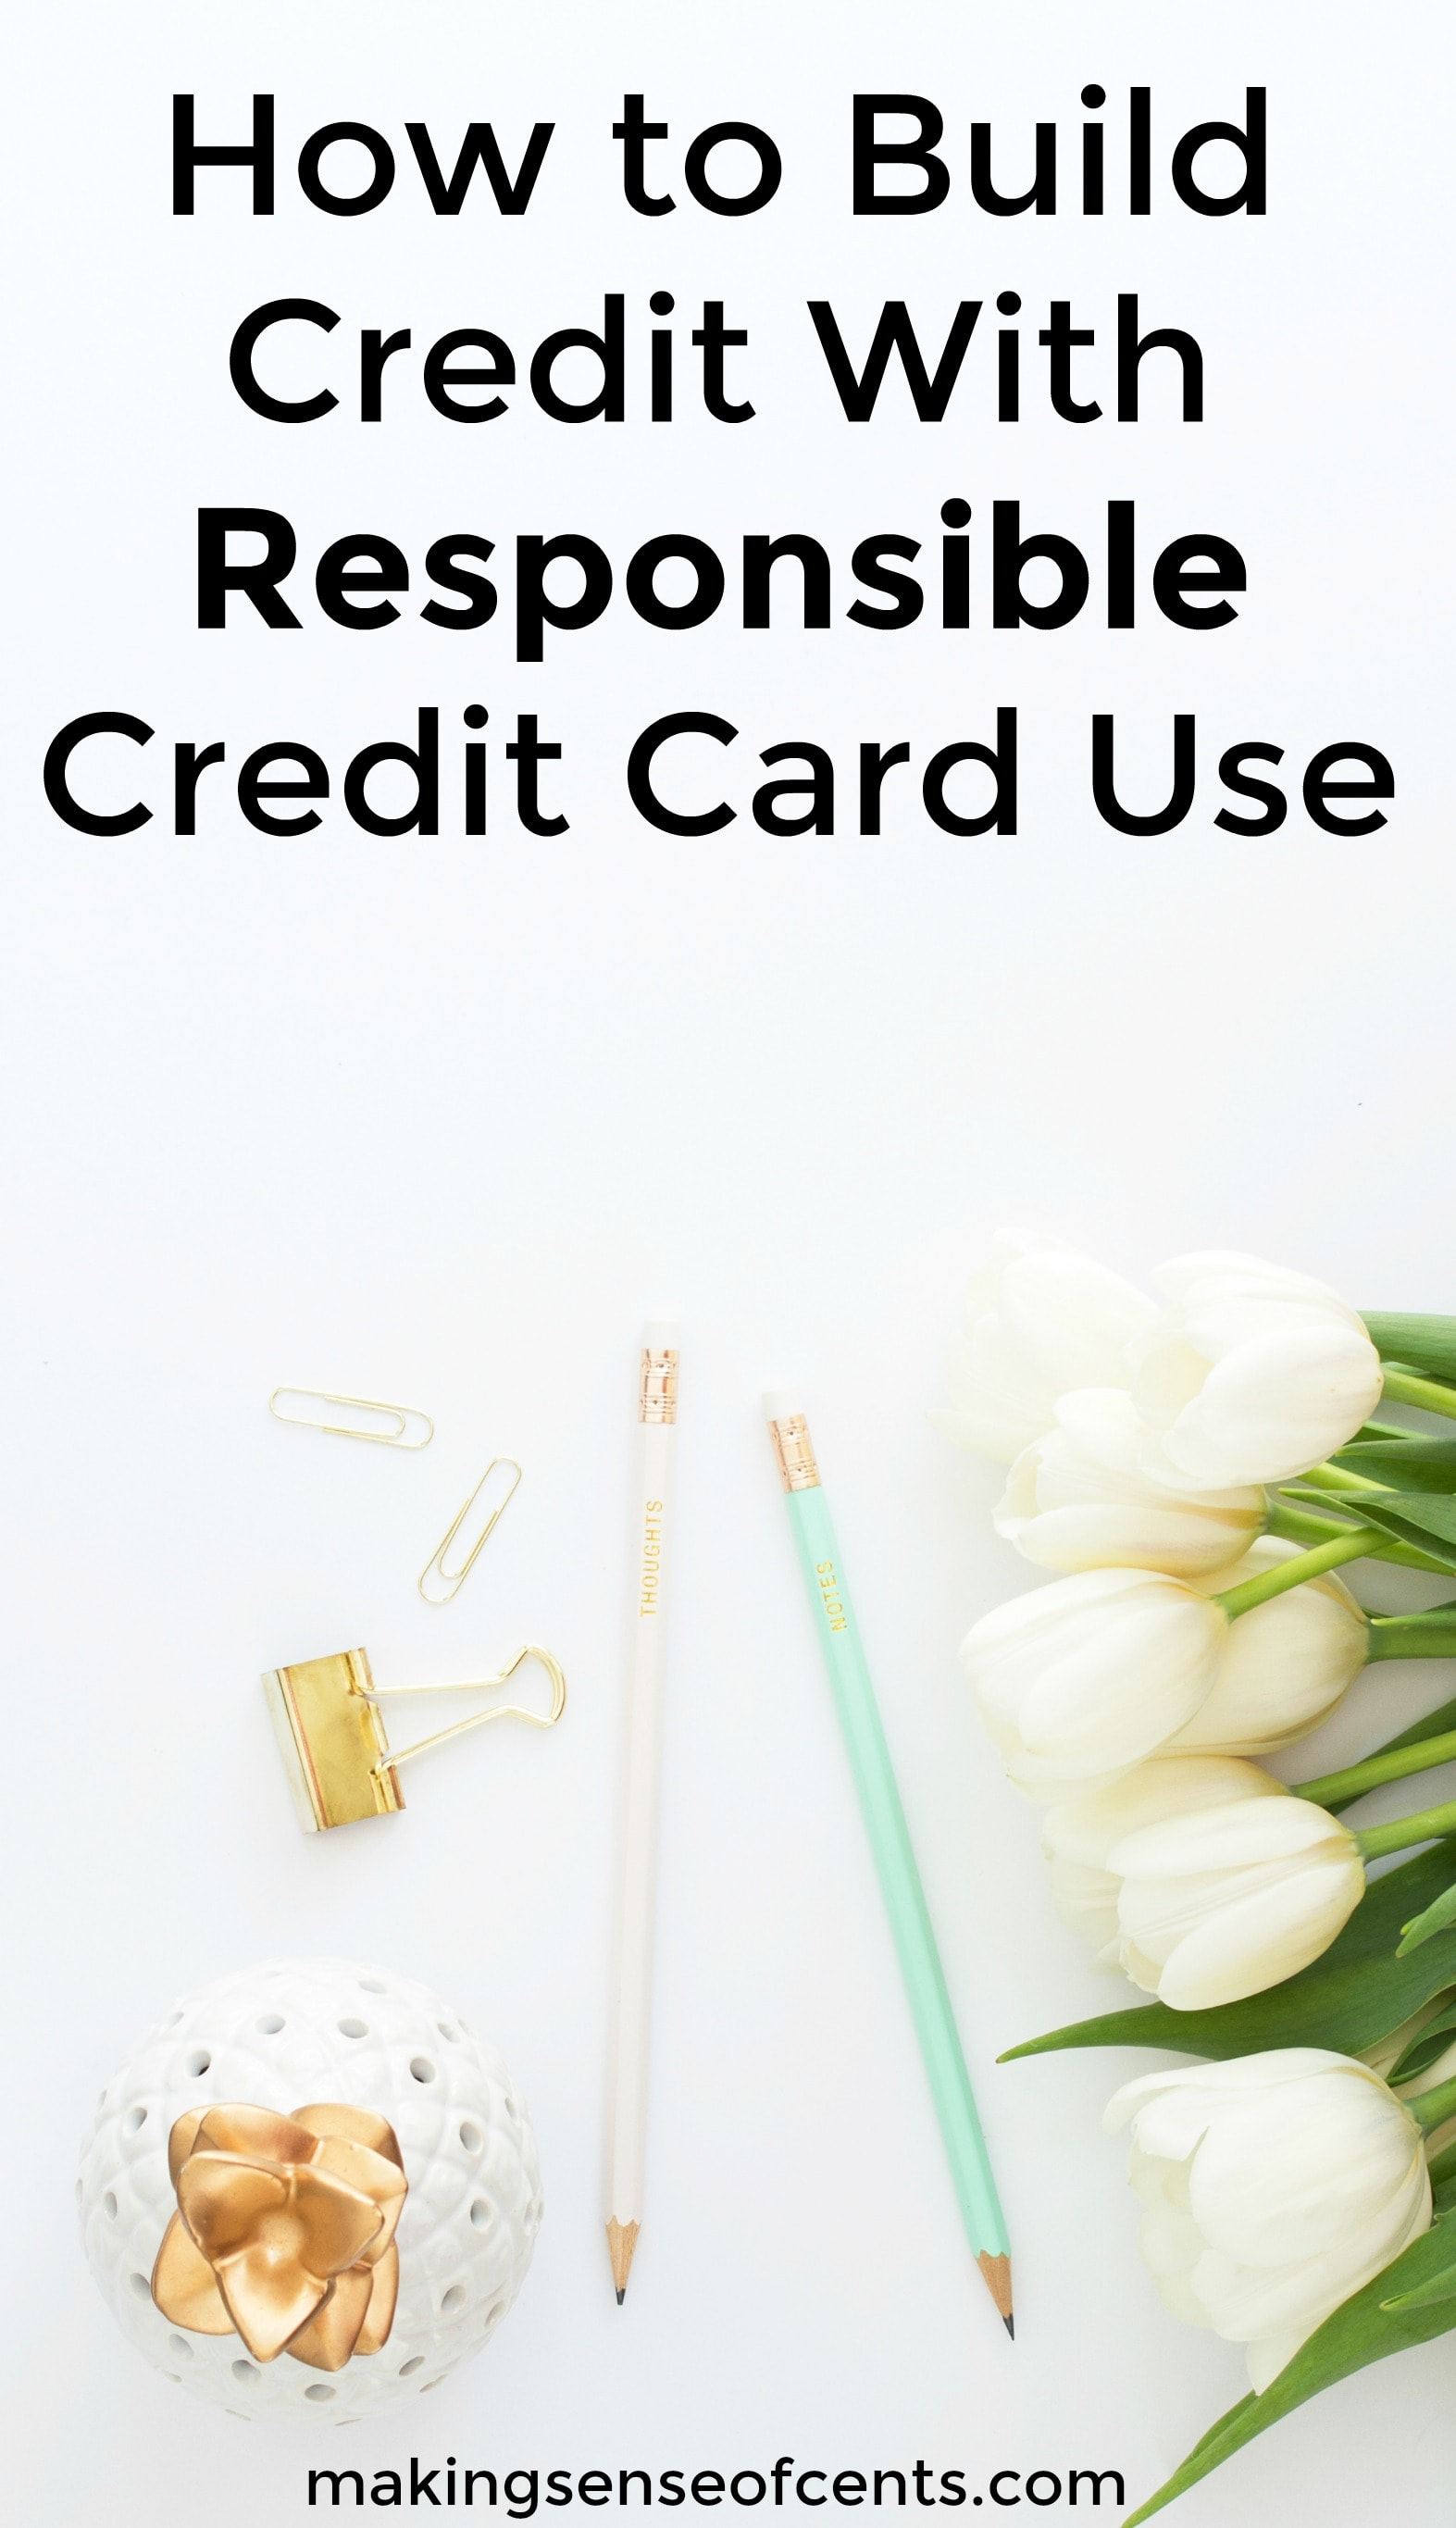 Find out how to build credit with responsible credit card use. This is a great list!